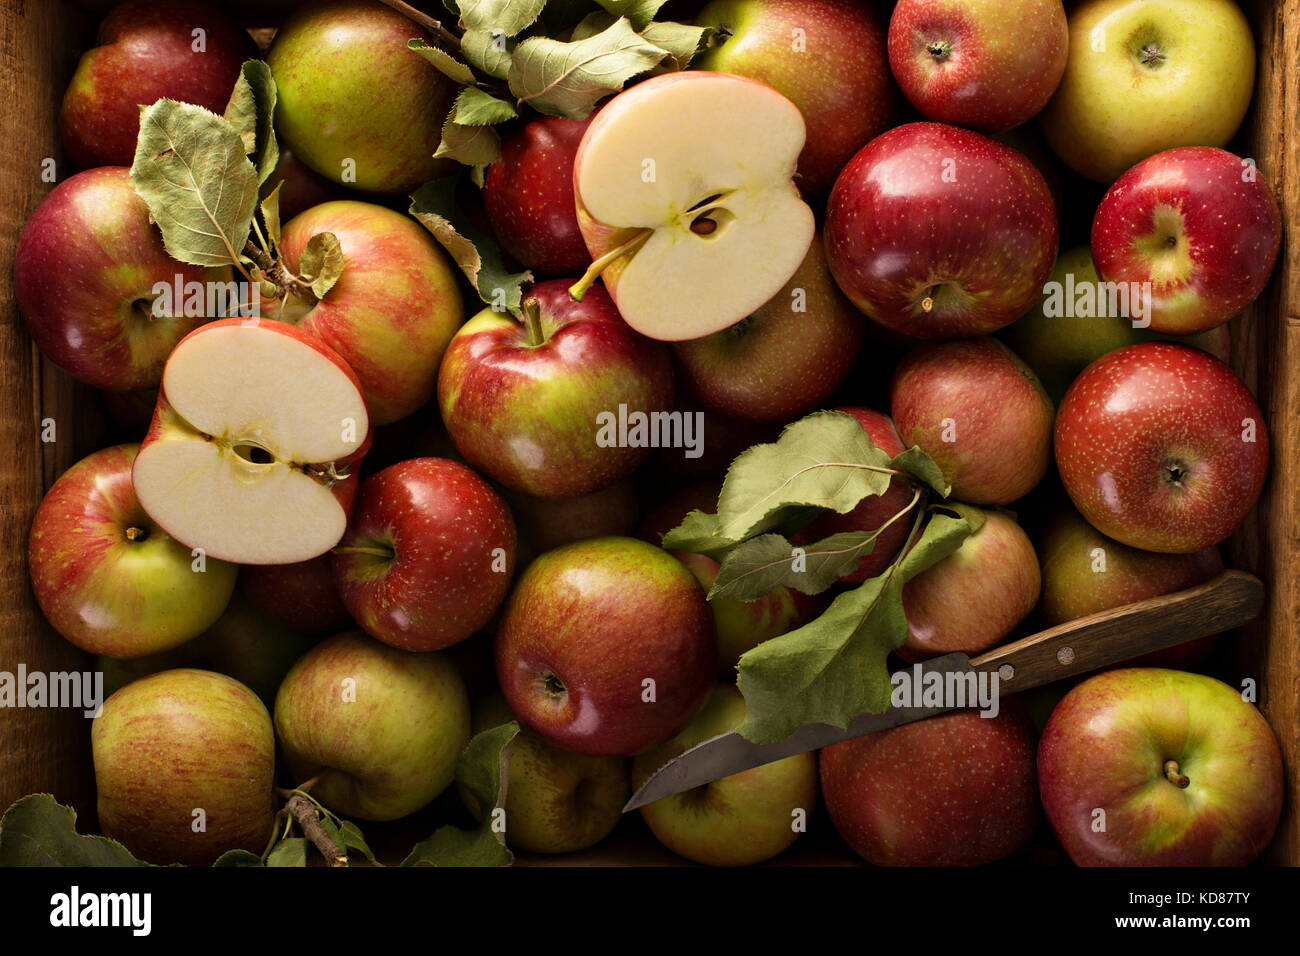 Freshly picked apples in a wooden crate - Stock Image